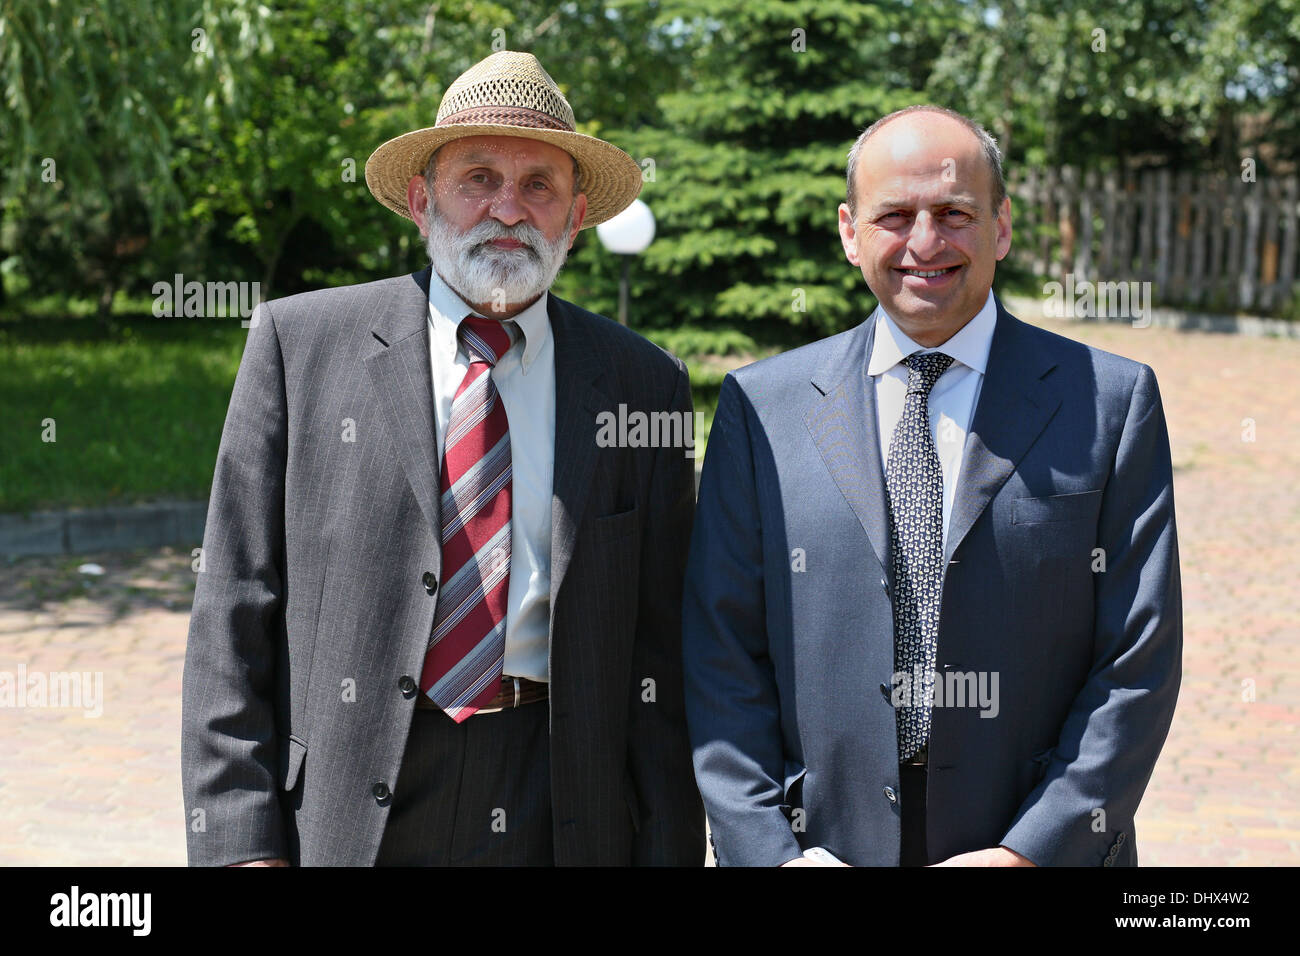 Mr. Adam Bartosz of Tarnow Committee for the Protection of Monuments of Jewish Culture and Mr Romie Tager QC - Stock Image